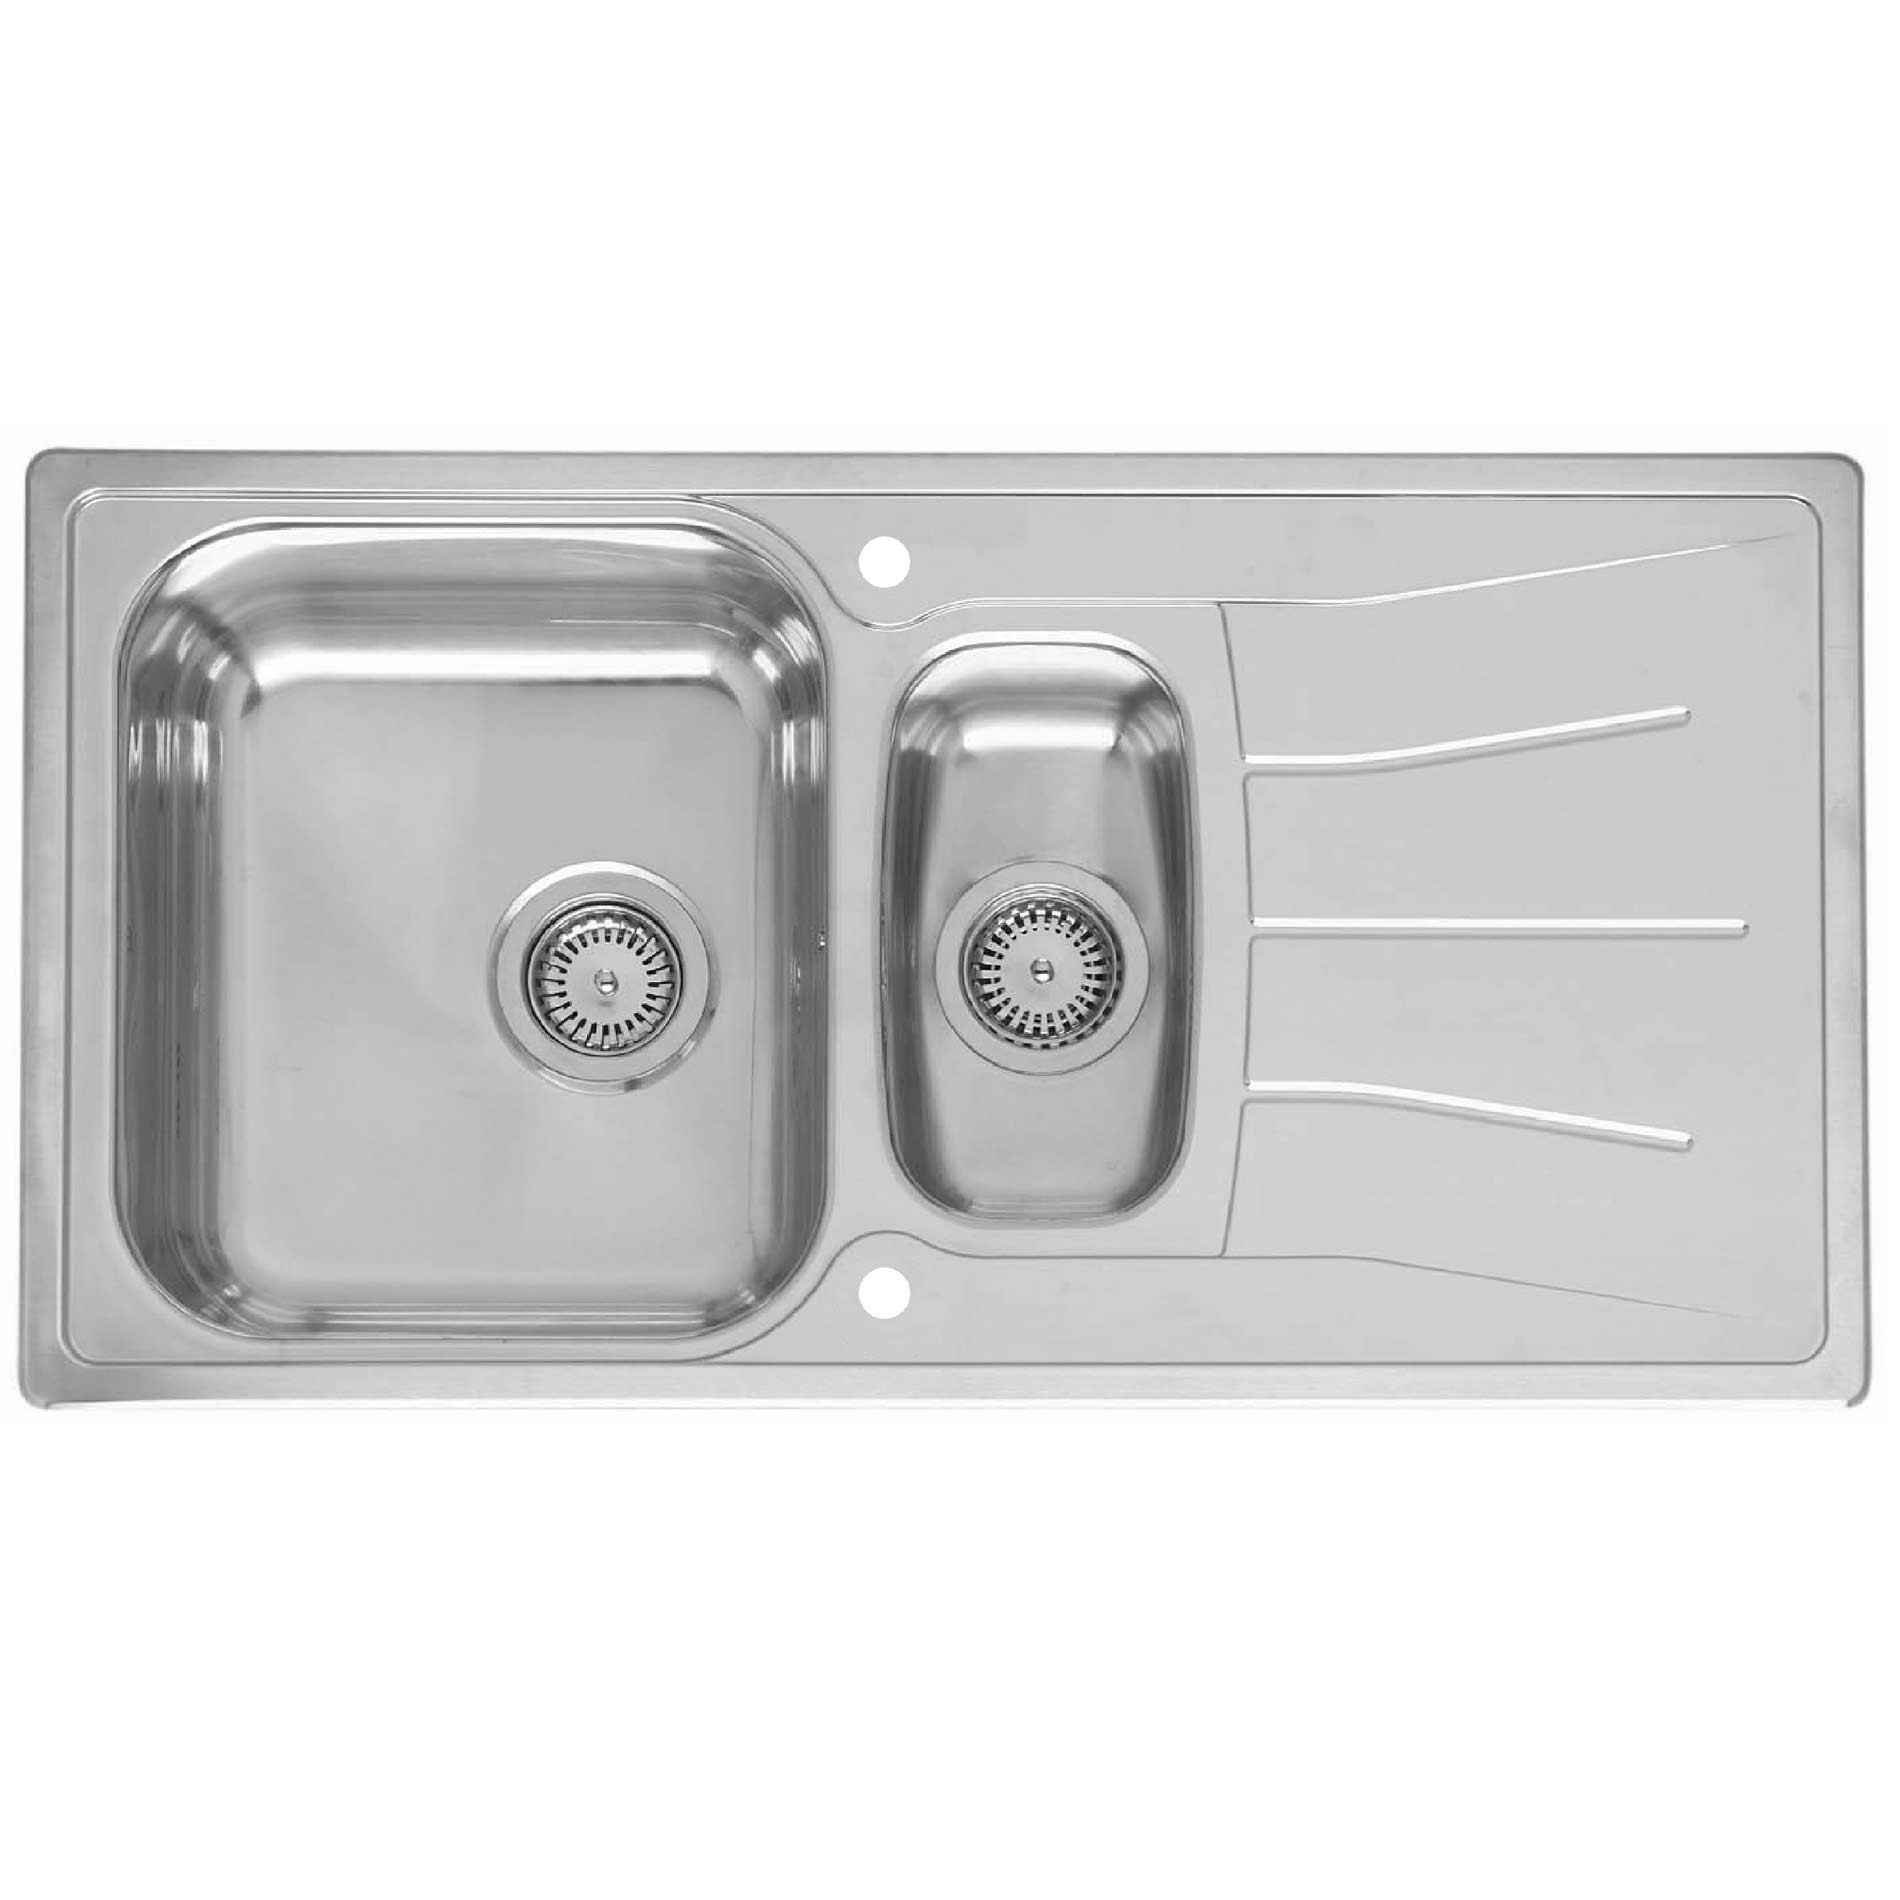 picture of diplomat 1 5 eco   rle220s stainless steel sink reginox  diplomat 1 5 eco   rle220s stainless steel sink   kitchen      rh   kitchensinksandtaps co uk